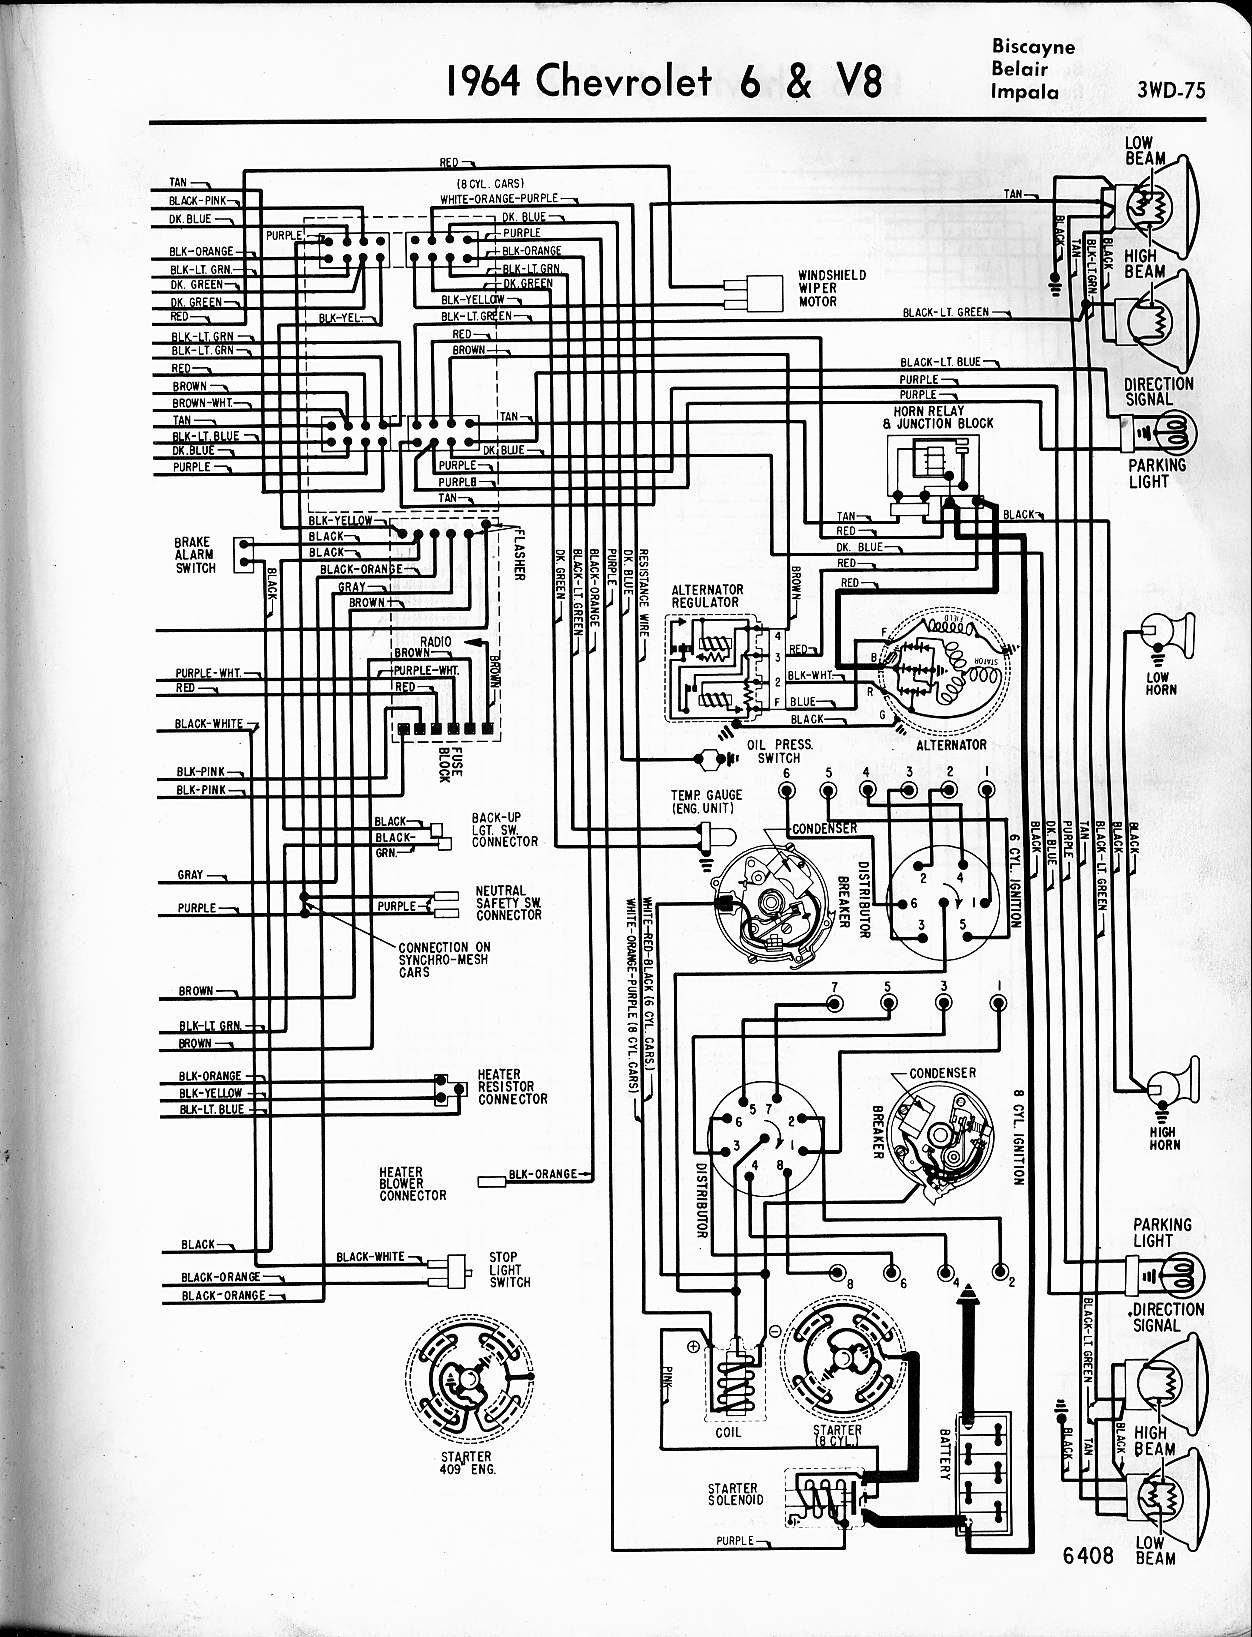 hight resolution of 1964 impala fuse panel diagram wiring diagram autovehicle1964 chevelle fuse box diagram wiring diagram1964 impala fuse